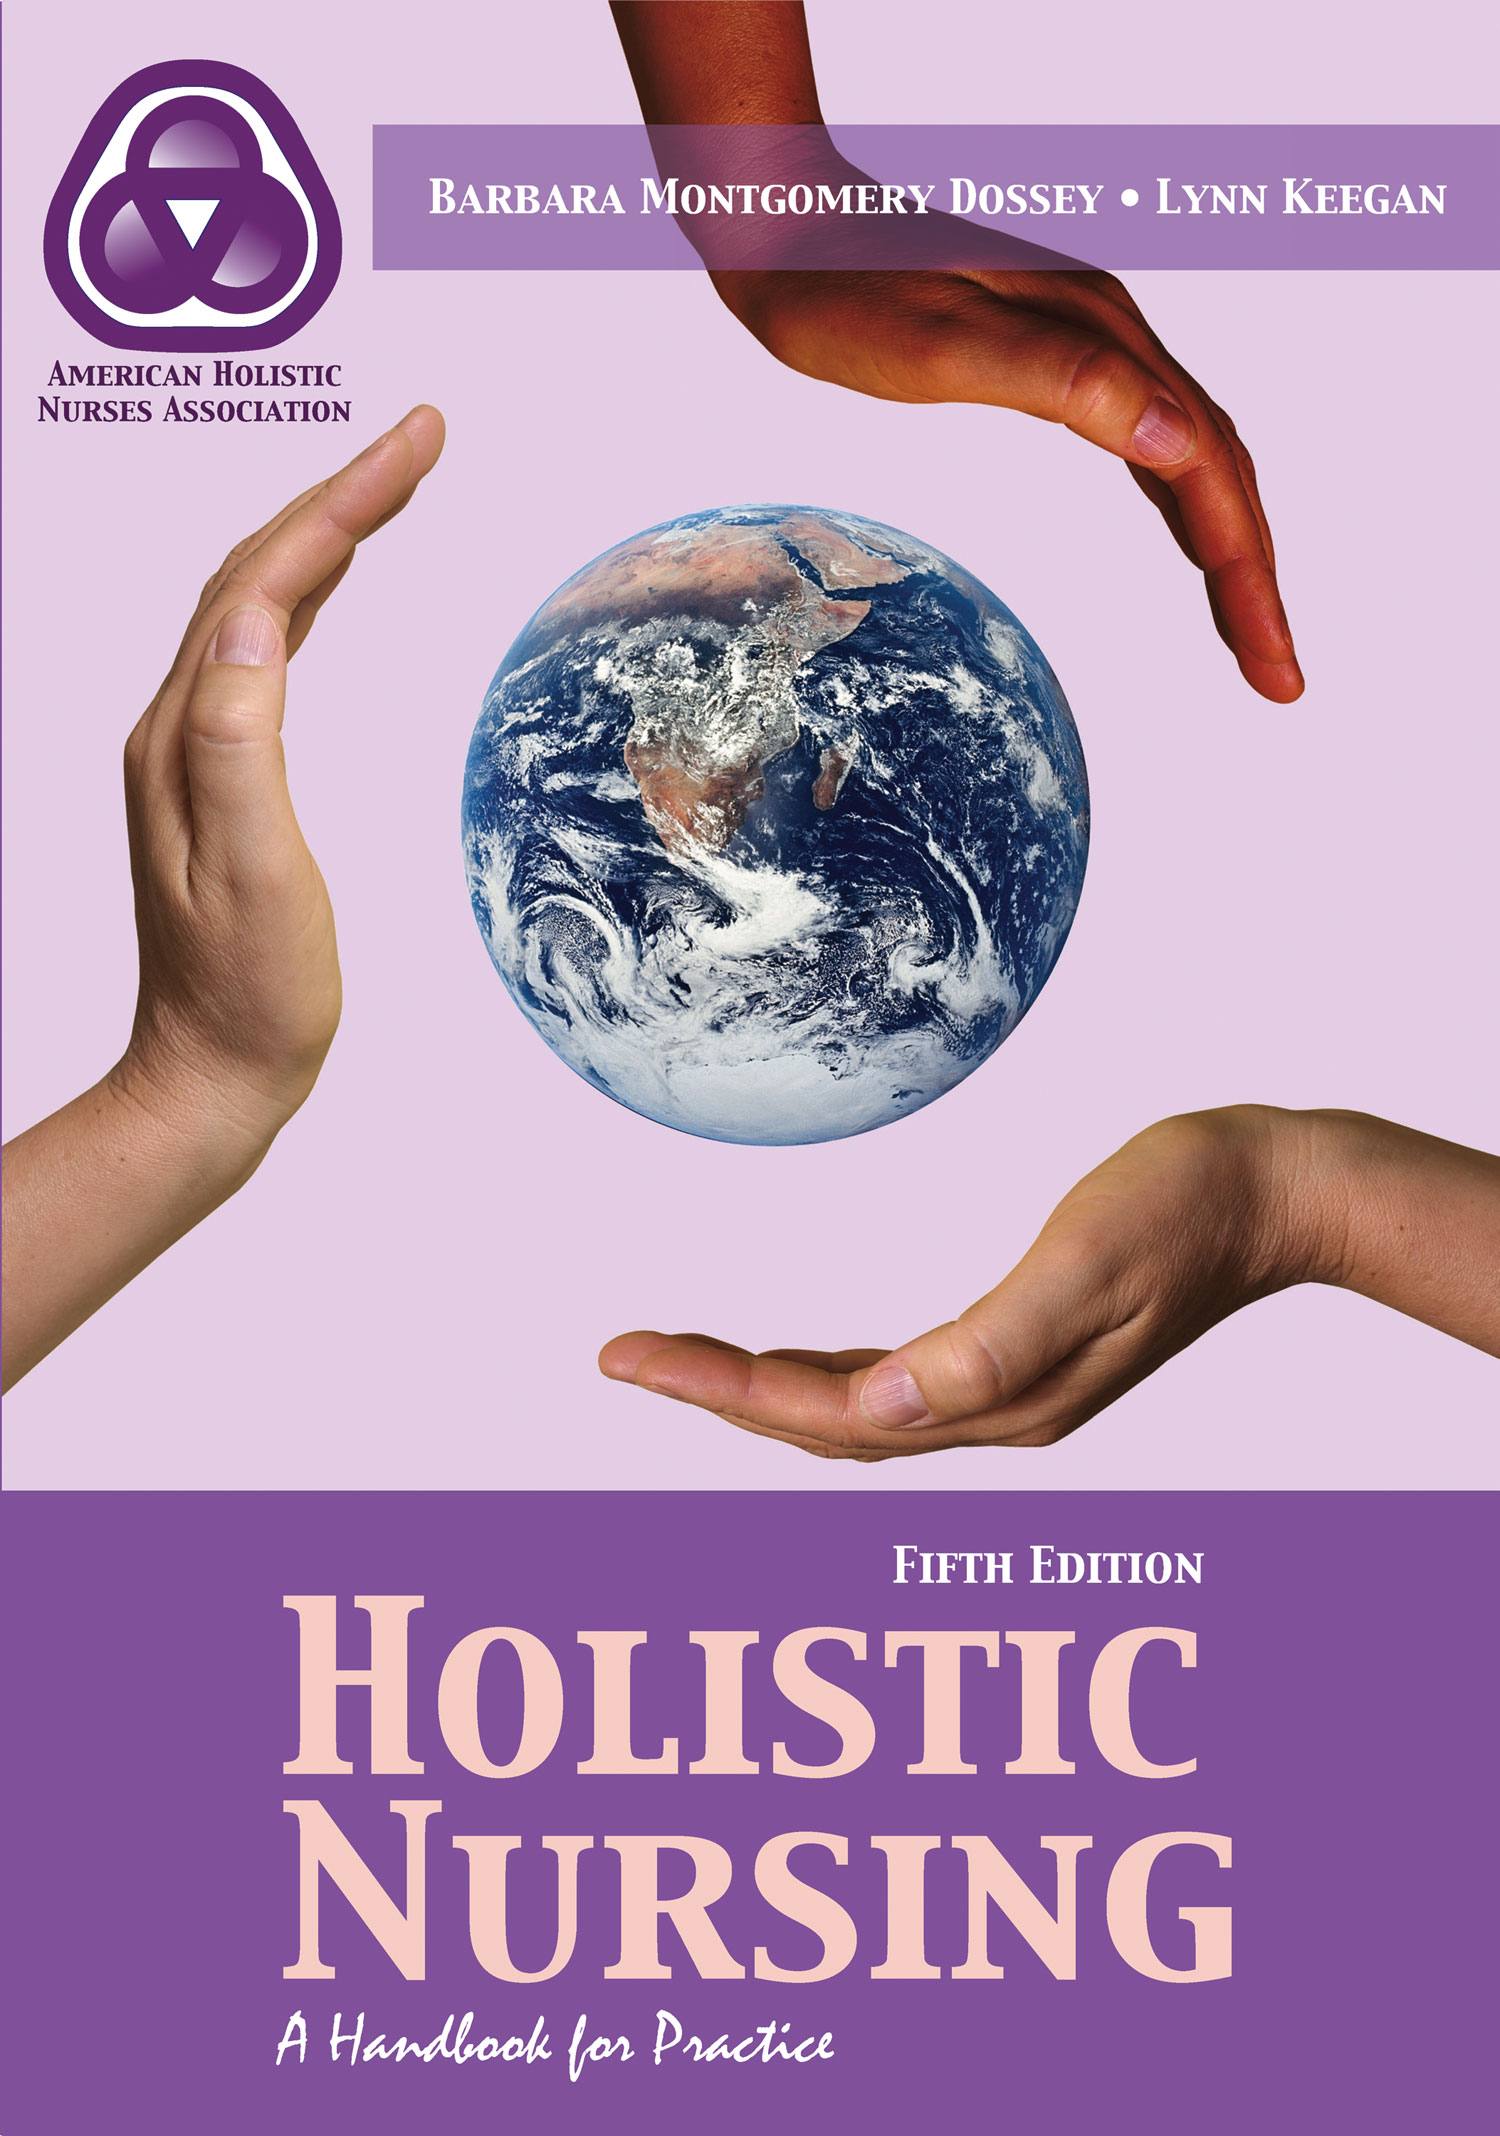 Image of the book cover for 'HOLISTIC NURSING'